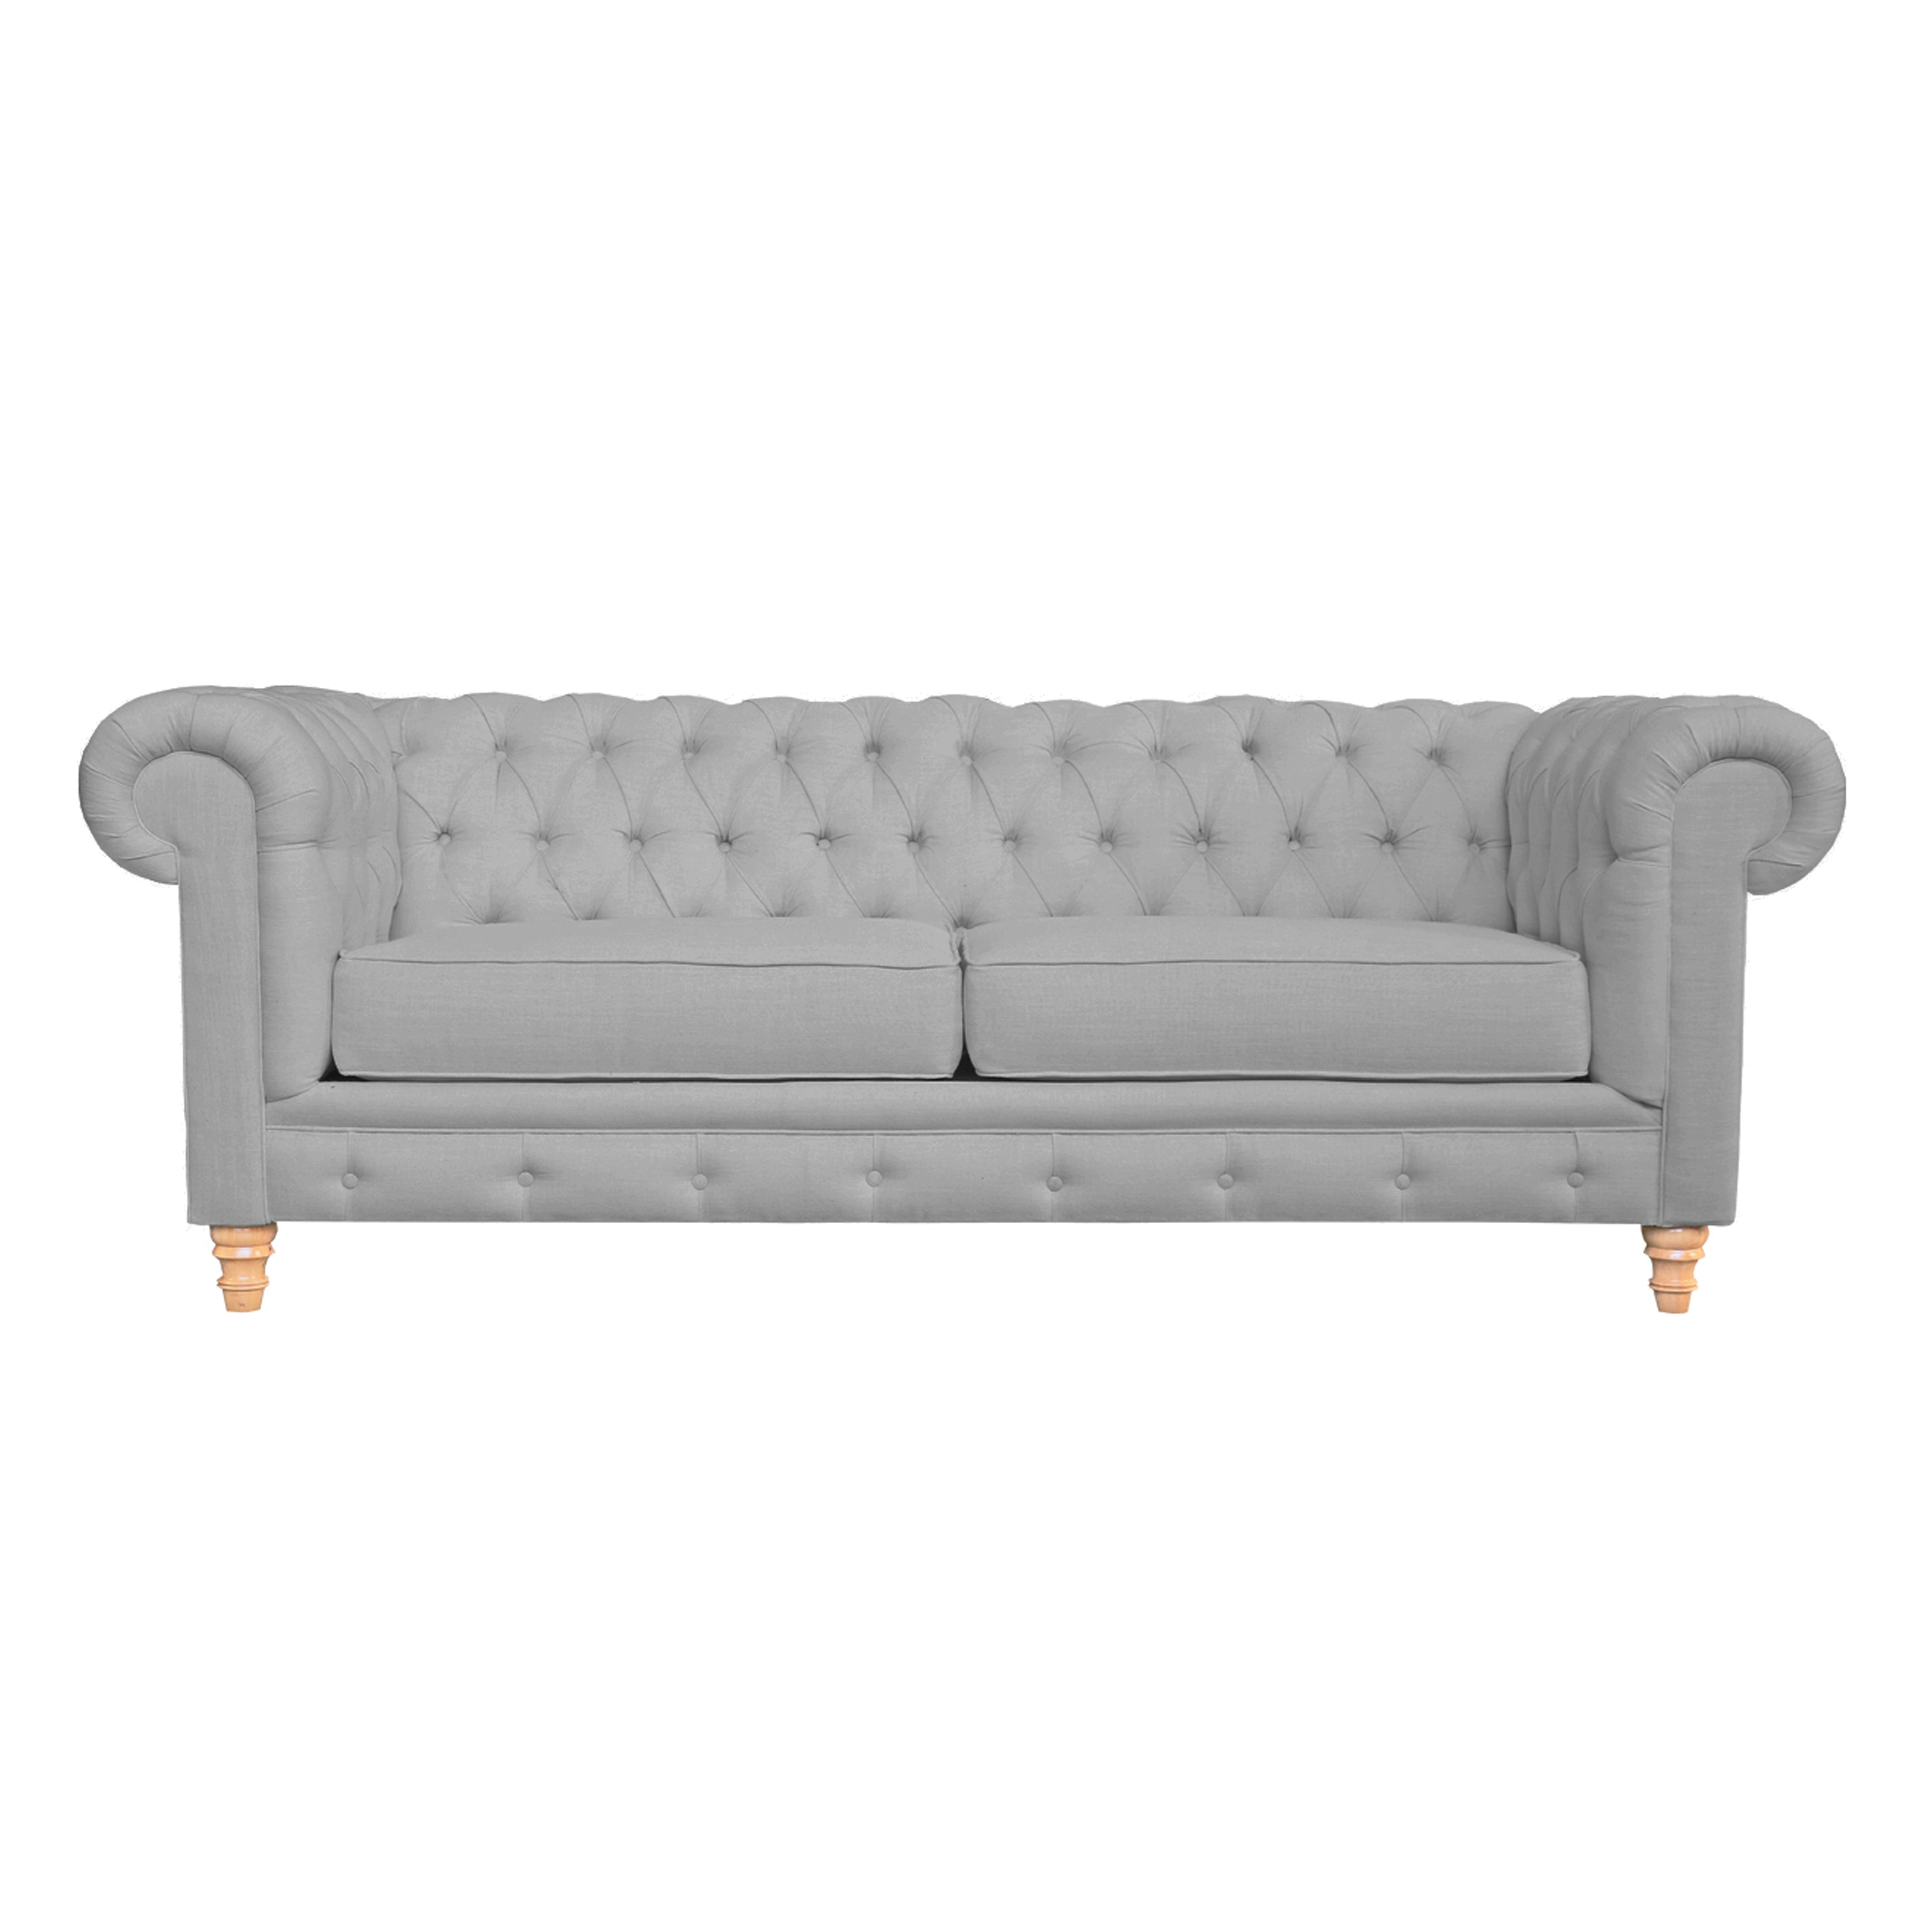 Cleveland Tufted Eco Friendly Sofa Free Shipping Today 14587783